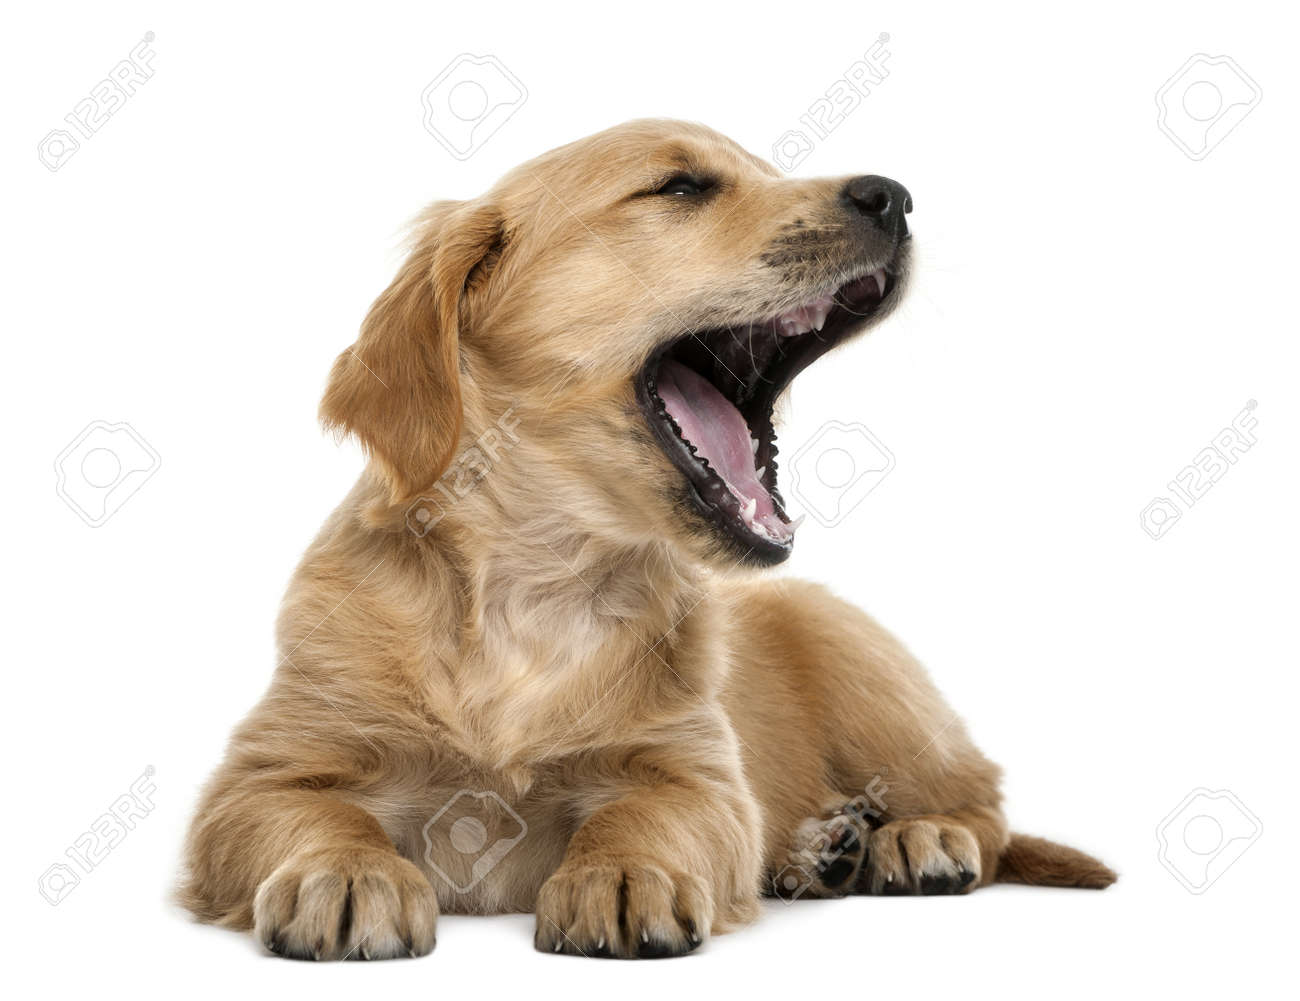 Golden retriever puppy, 7 weeks old, lying and yawning against white background Stock Photo - 16486596